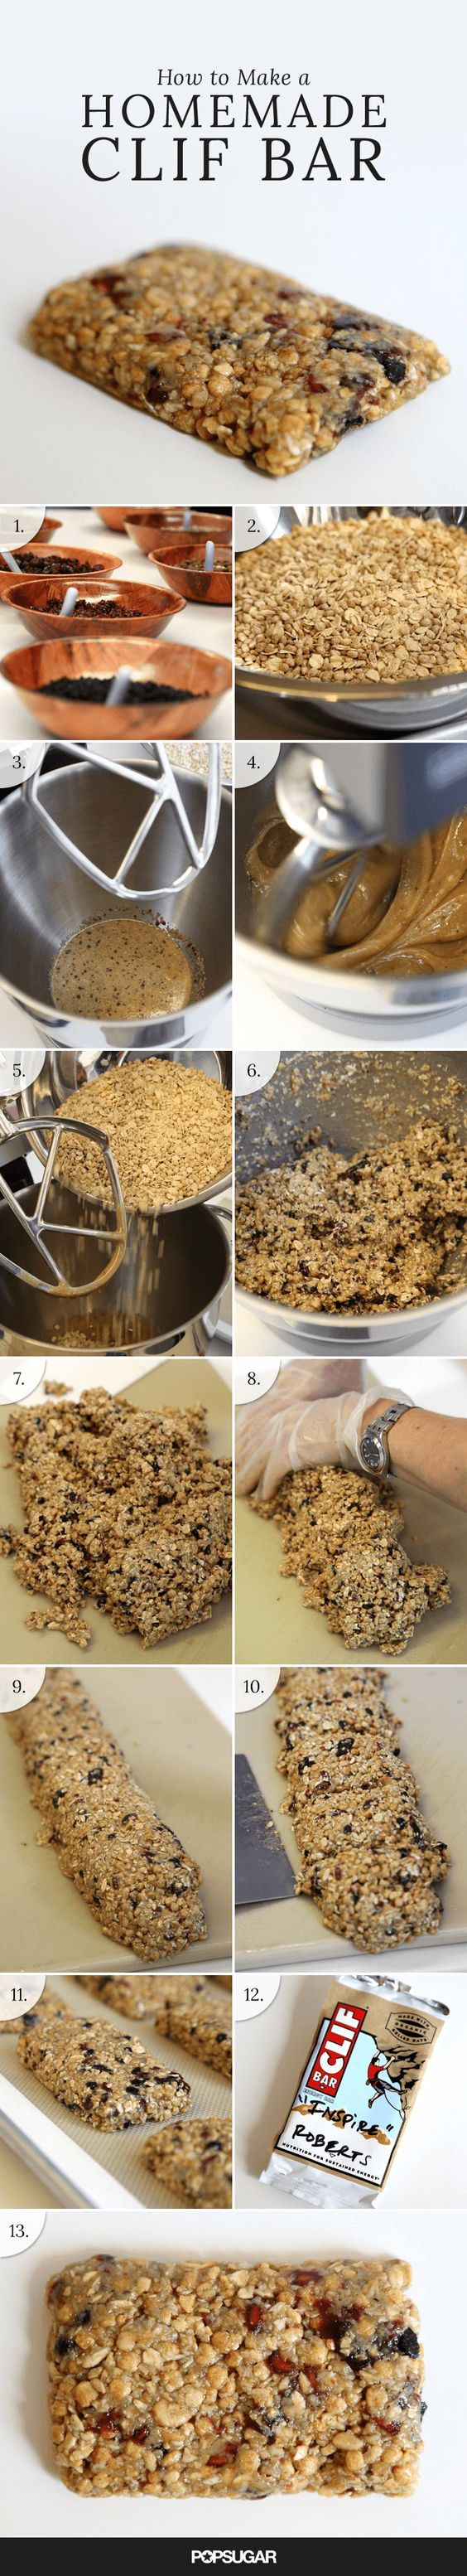 Have you ever wondered how to blend, shape, and bake energy bars? The makers of Clif Bar shared their tips and techniques for making snack bars using oats, nut butter, and a variety of dried fruits. See the step-by-step instructions, so you can be empowered to make your own for post-workout snacks, road trips, or for any time you're on the go.